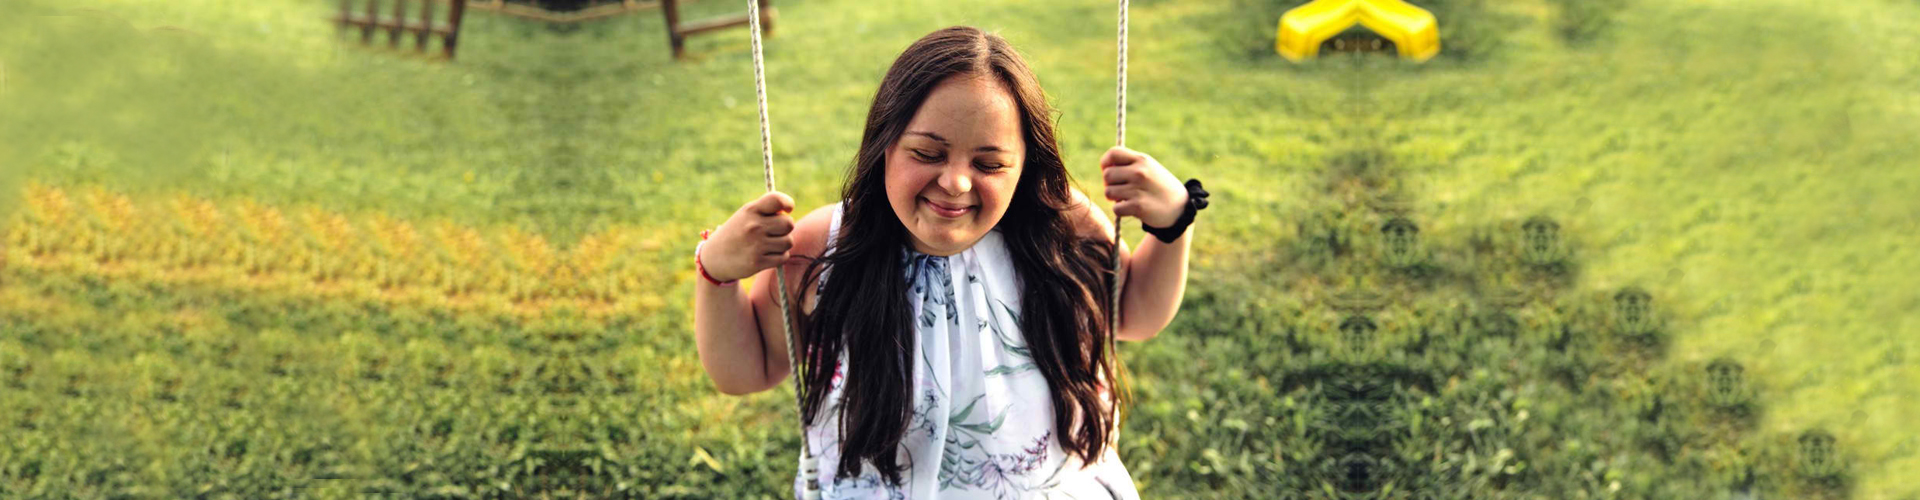 a picture of an adult girl with down syndrome outside at sunset